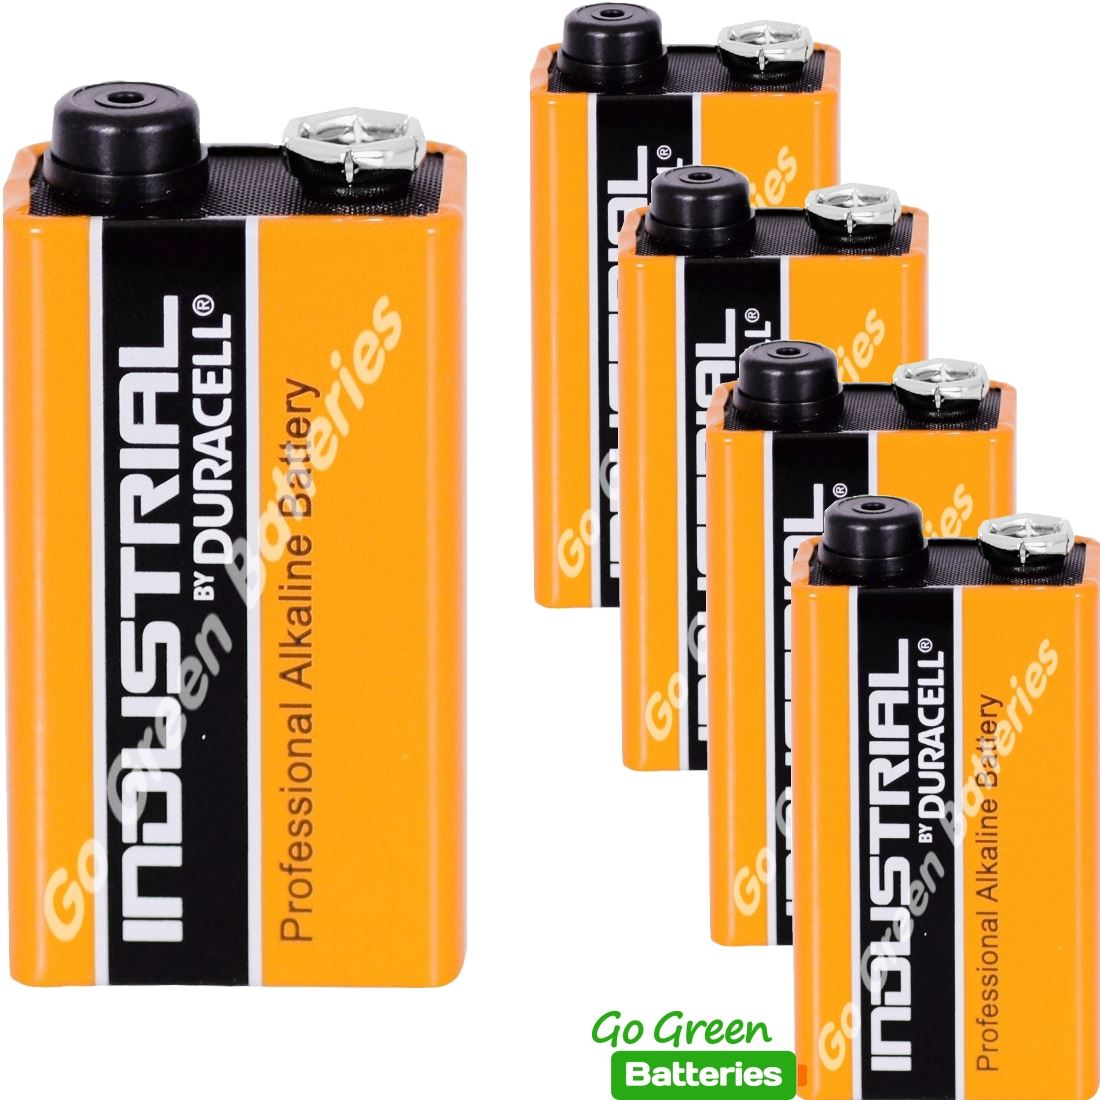 5 x Duracell 9V PP3 Industrial Procell Batteries, Smoke Alarm, LR22 BLOC MN1604